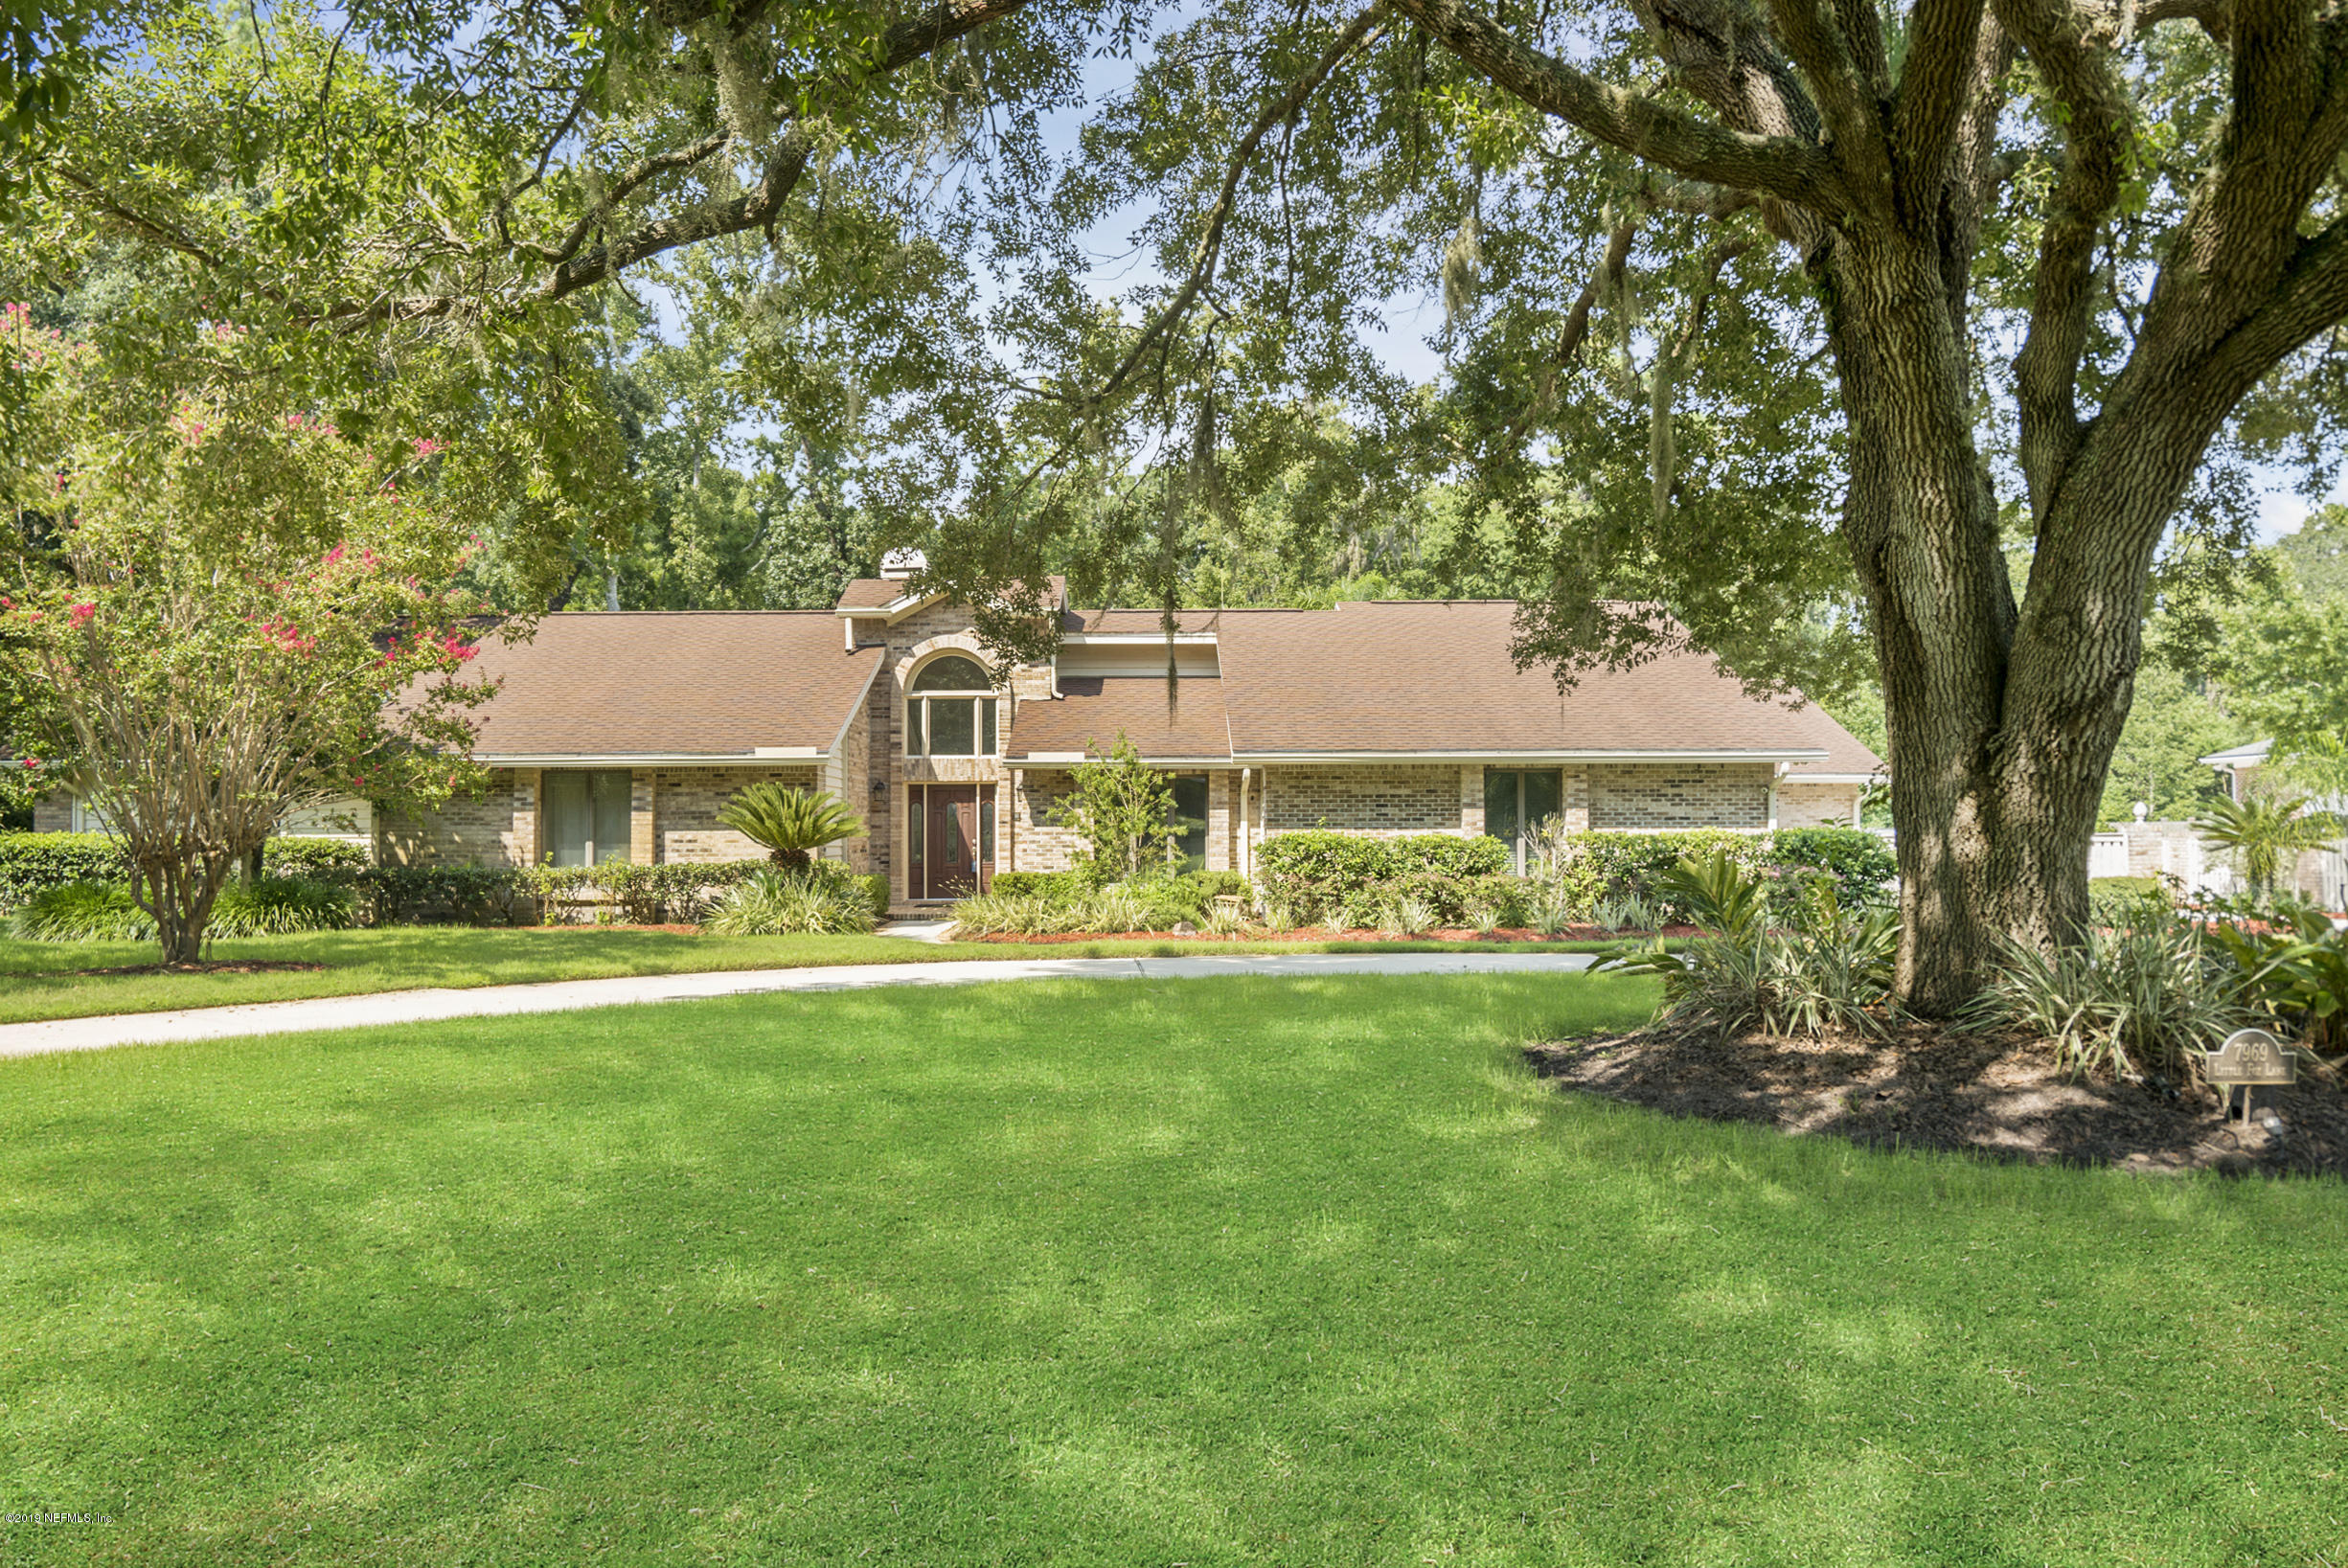 7969 LITTLE FOX, JACKSONVILLE, FLORIDA 32256, 5 Bedrooms Bedrooms, ,4 BathroomsBathrooms,Residential - single family,For sale,LITTLE FOX,1010150